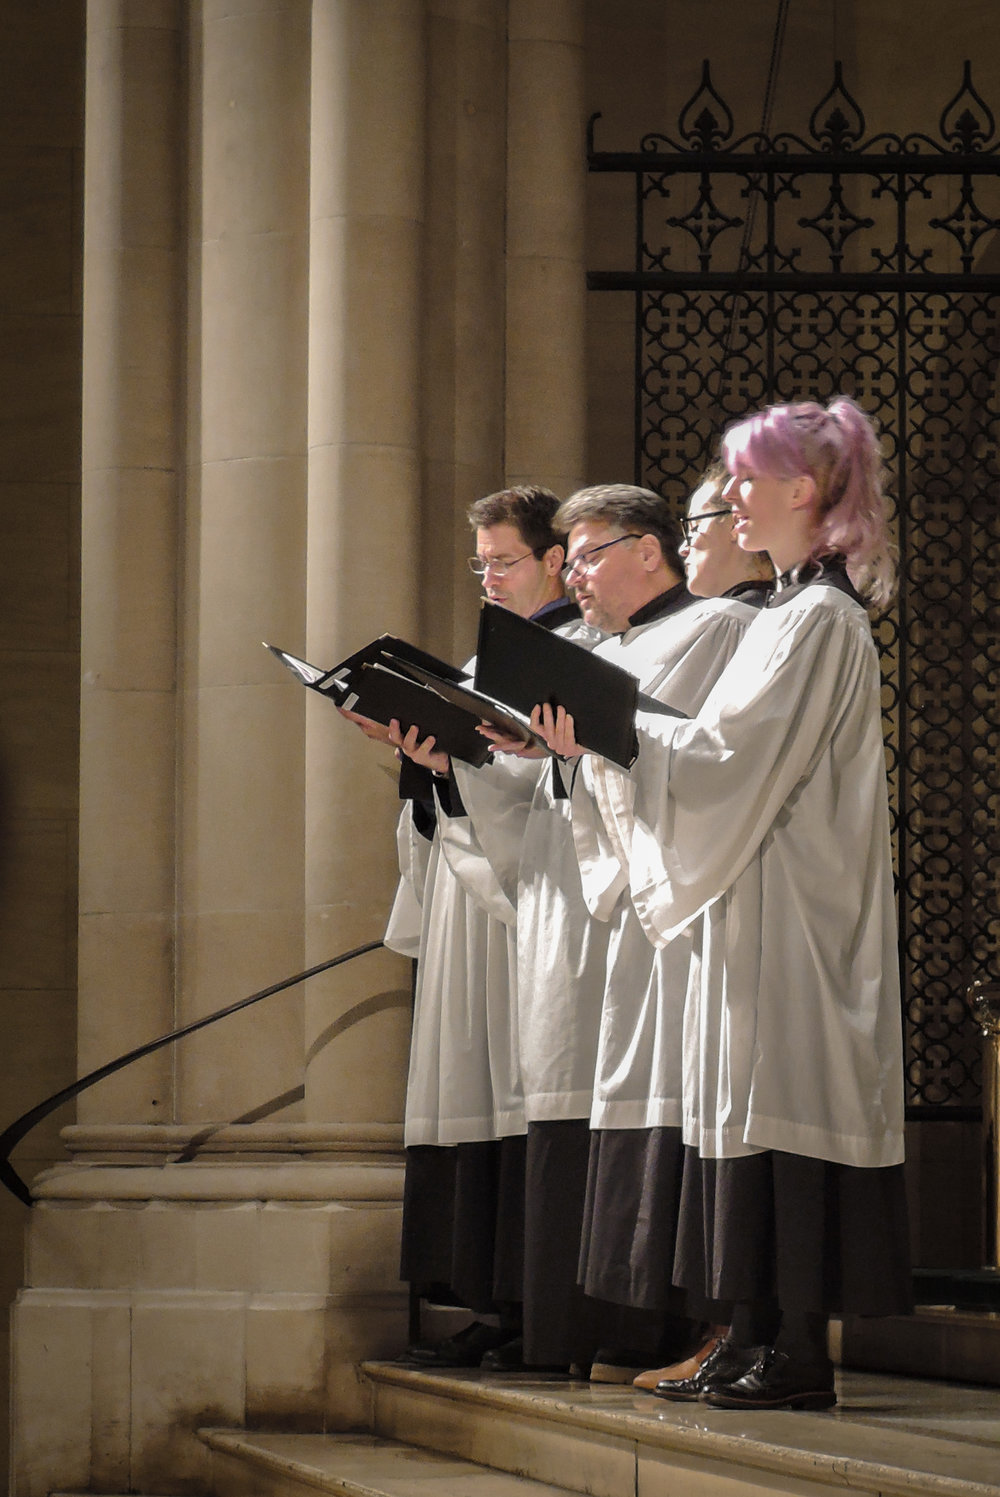 At Solemn Evensong on Candlemas Eve, a quartet sang the canticles and a motet.